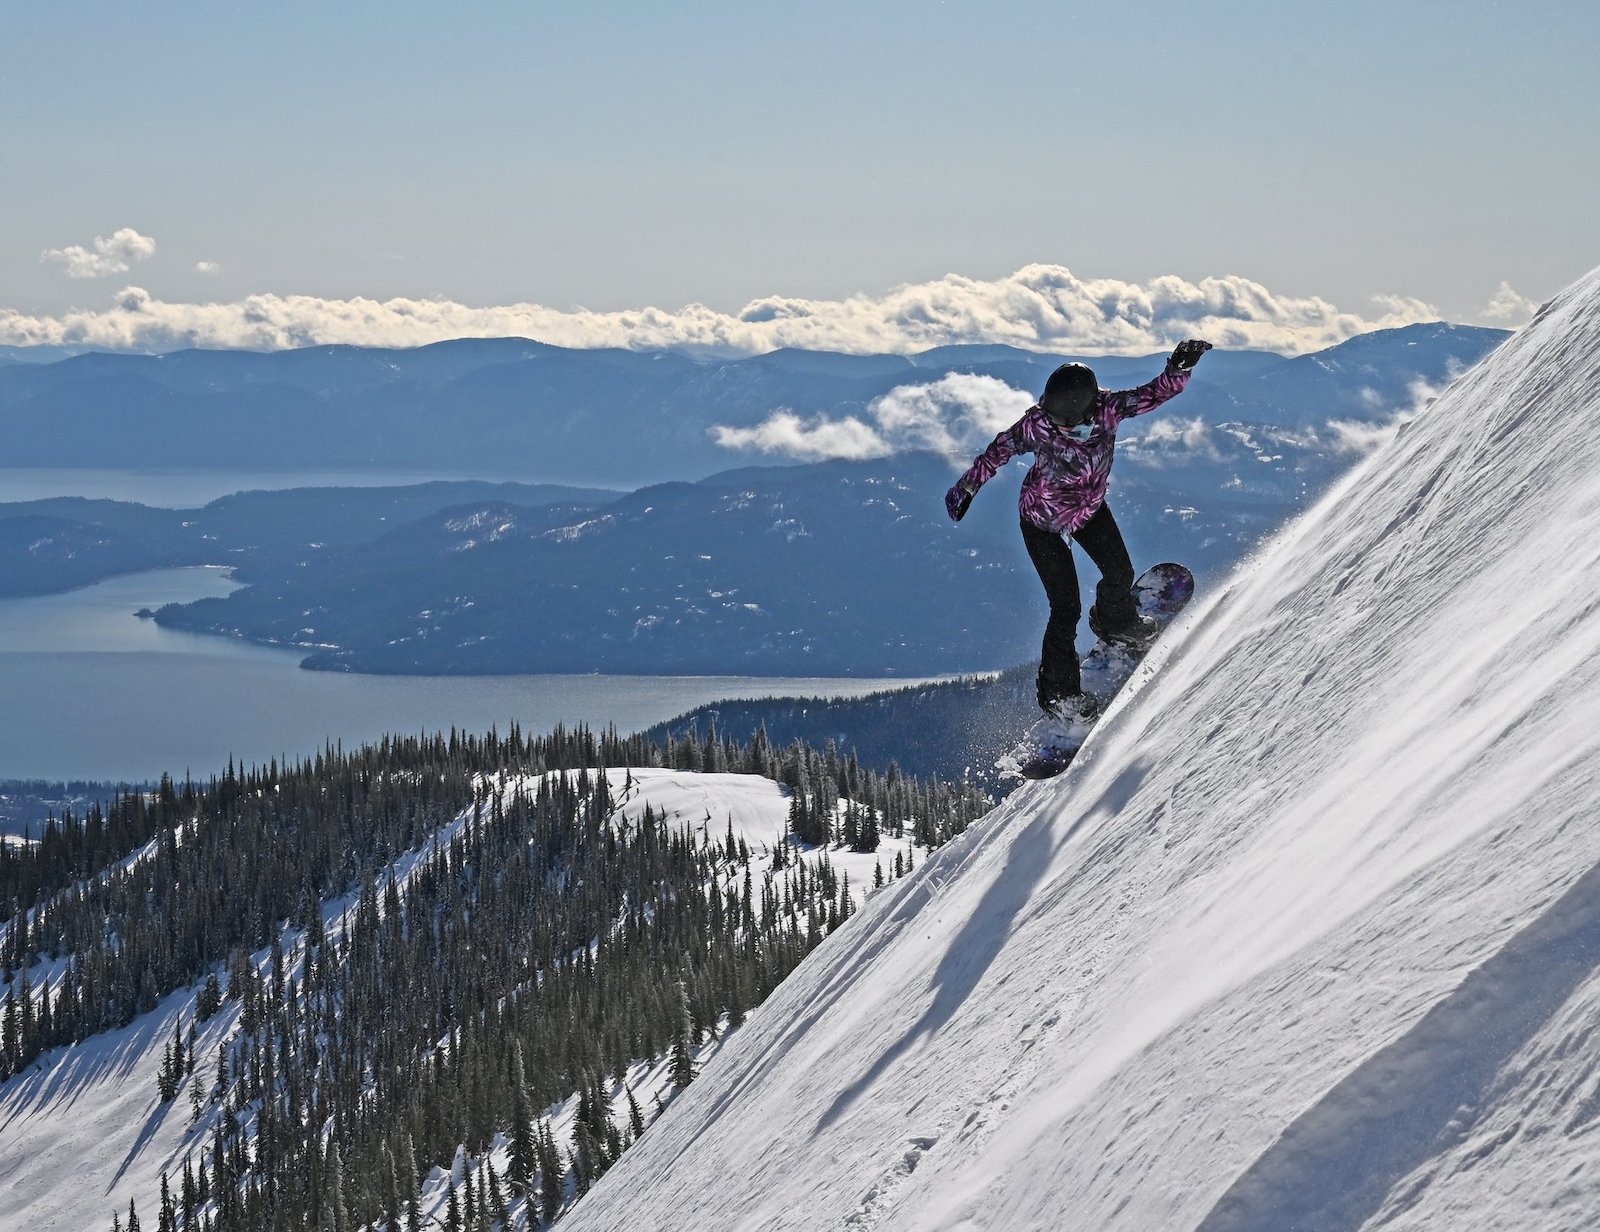 Image of a snowboarder jumping down a sharp incline at Schweitzer Mountain Resort in Idaho